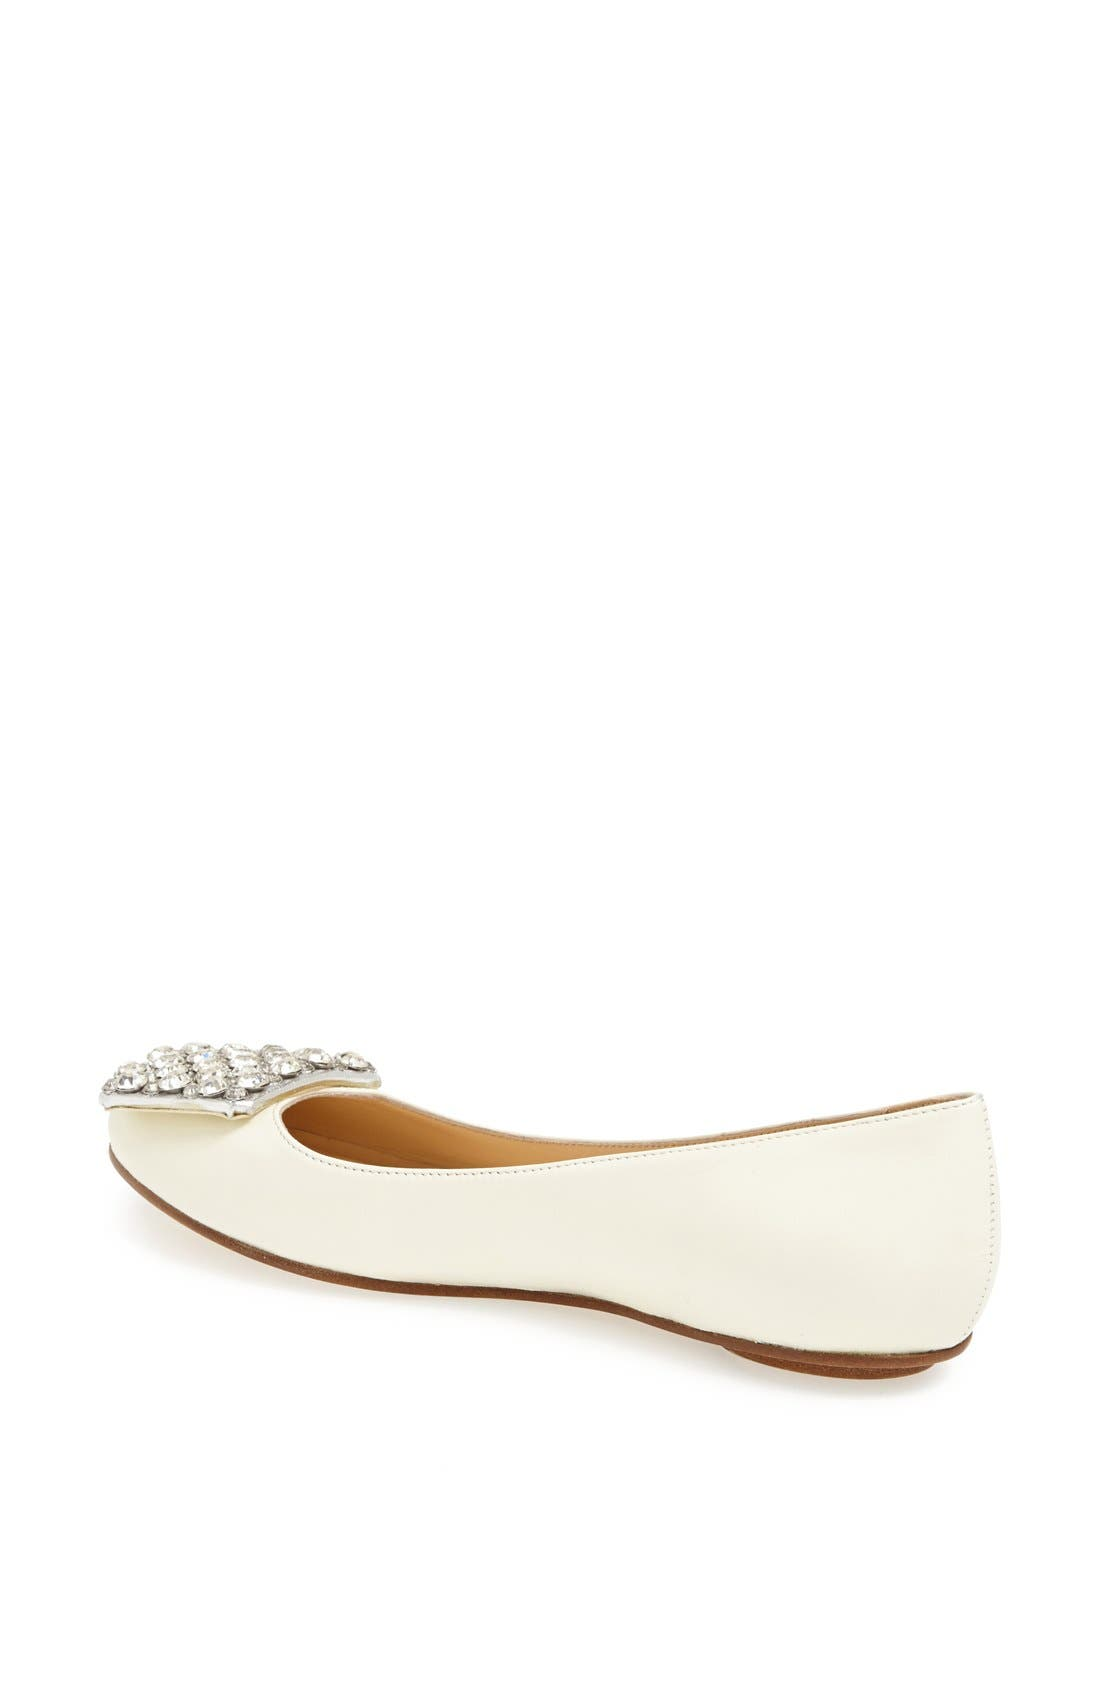 Alternate Image 2  - kate spade new york 'brilliant' nappa leather flat